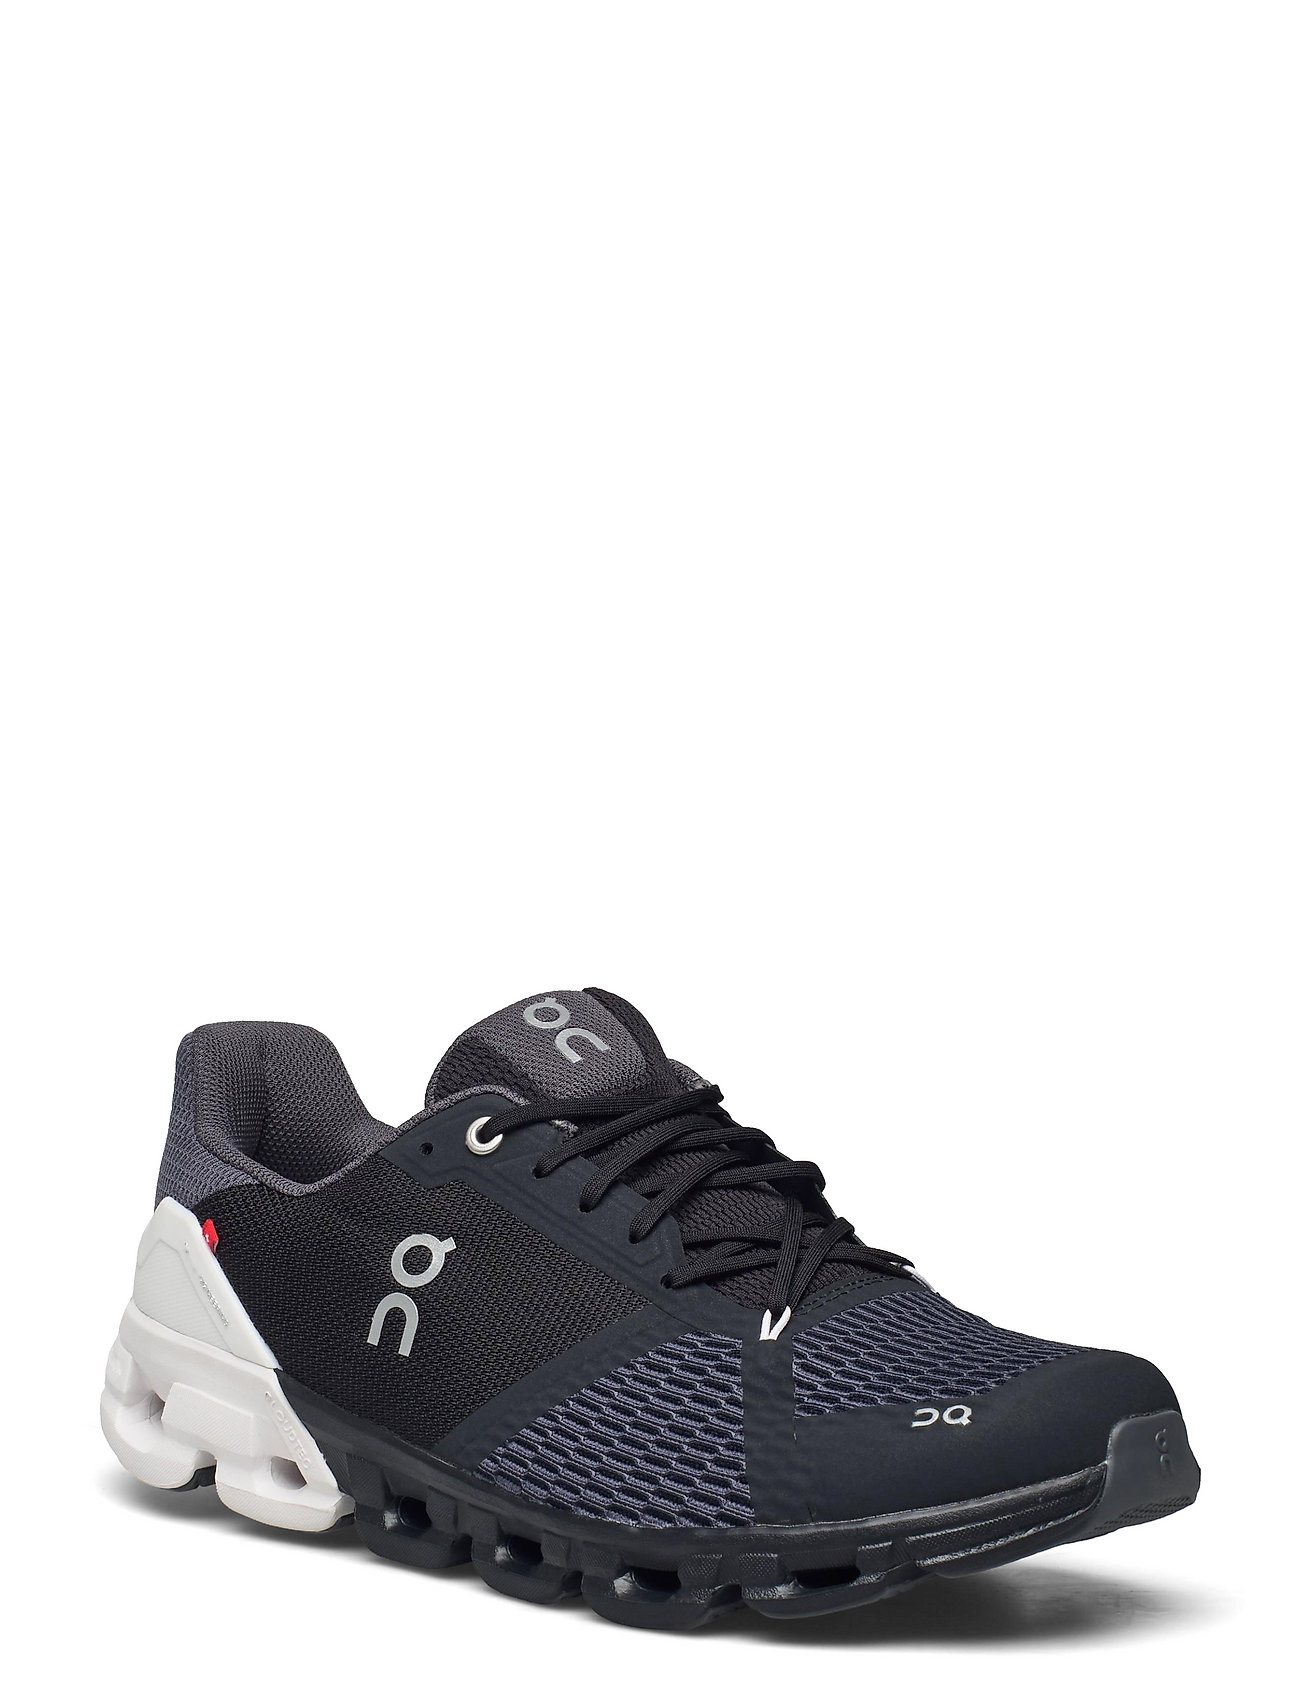 Cloudflyer Shoes Sport Shoes Running Shoes Sort On